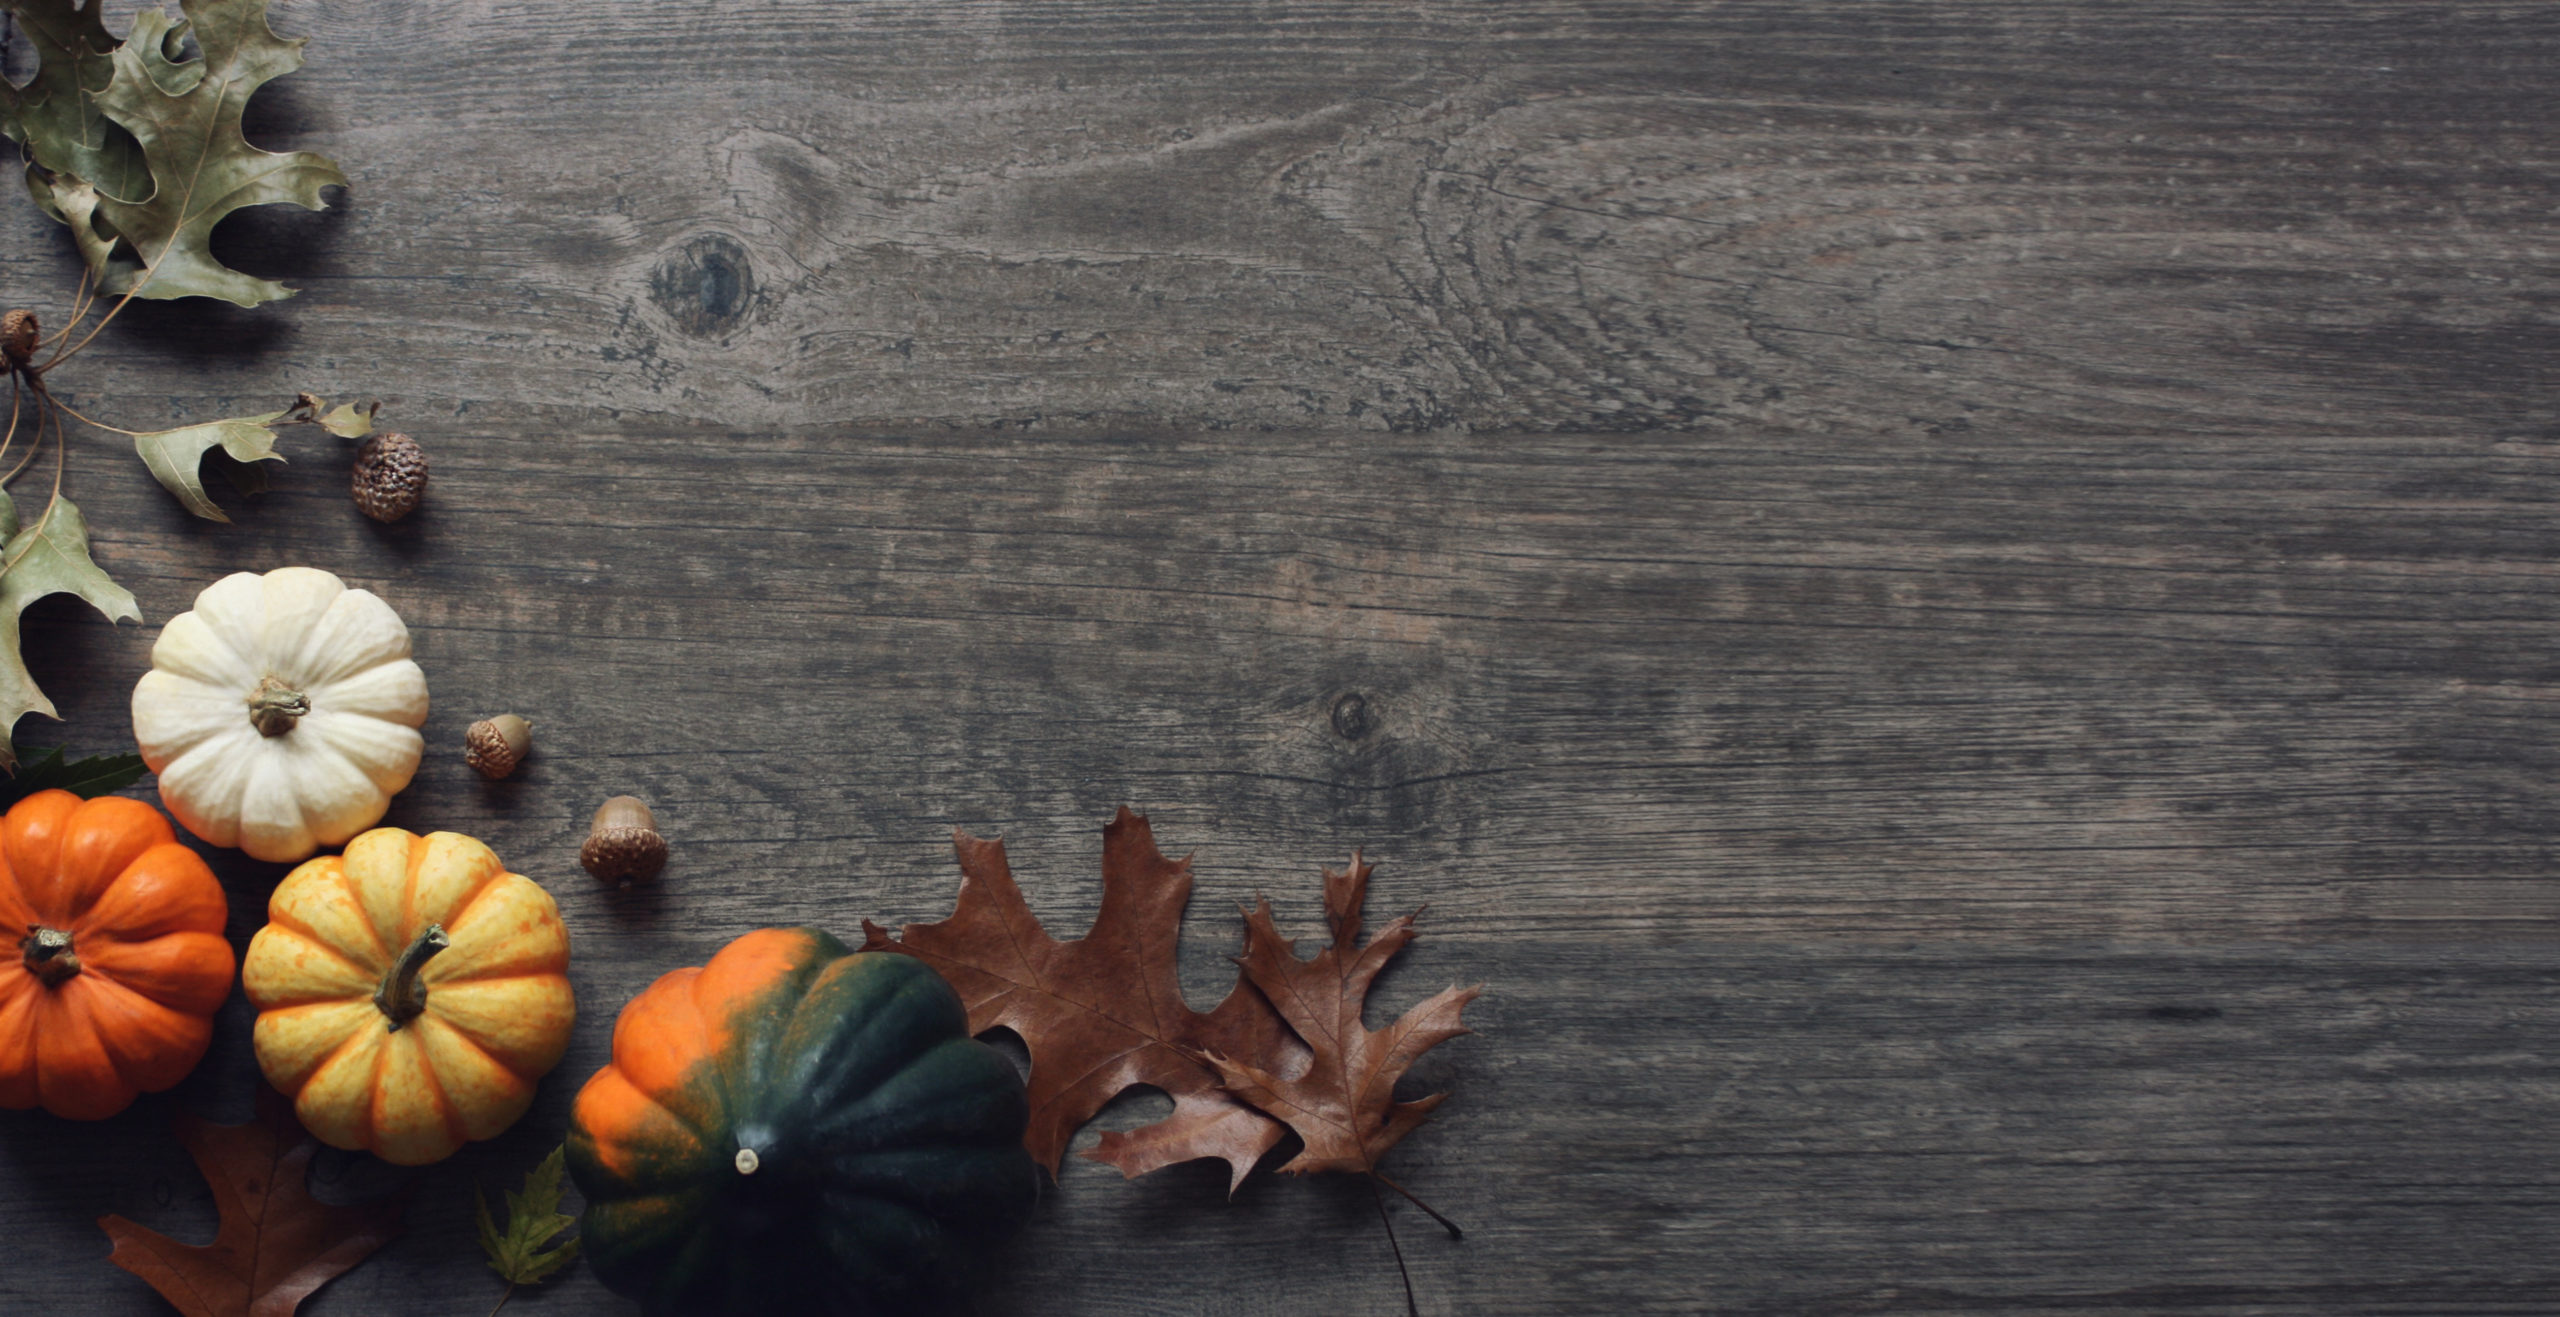 Thanksgiving Holiday Rustic Pumpkins and Leaves Over Wood Background, Copy Space